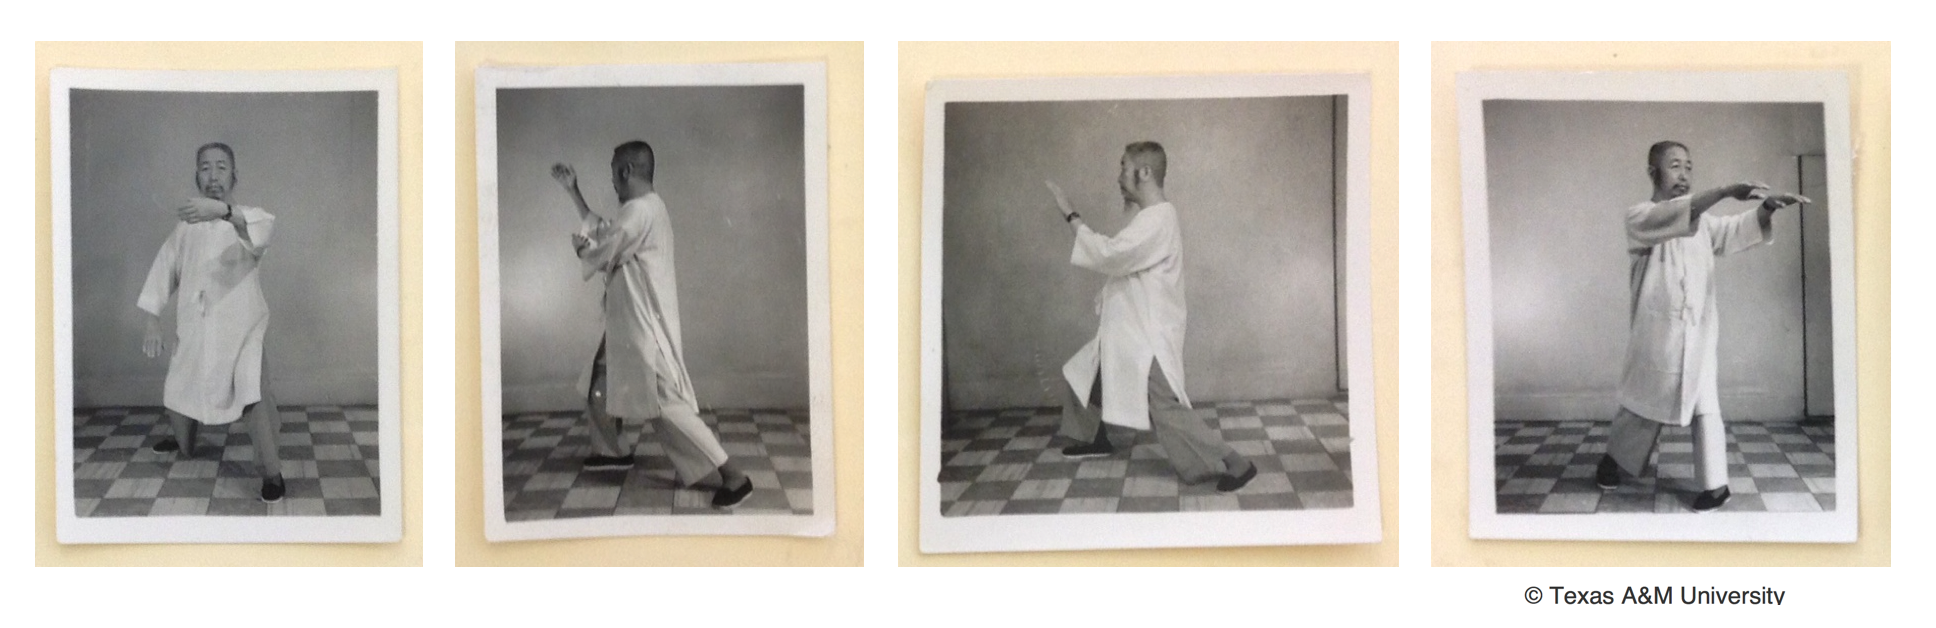 (Postures from the Tai Chi Form by Professor Cheng Man-Ch'ing)